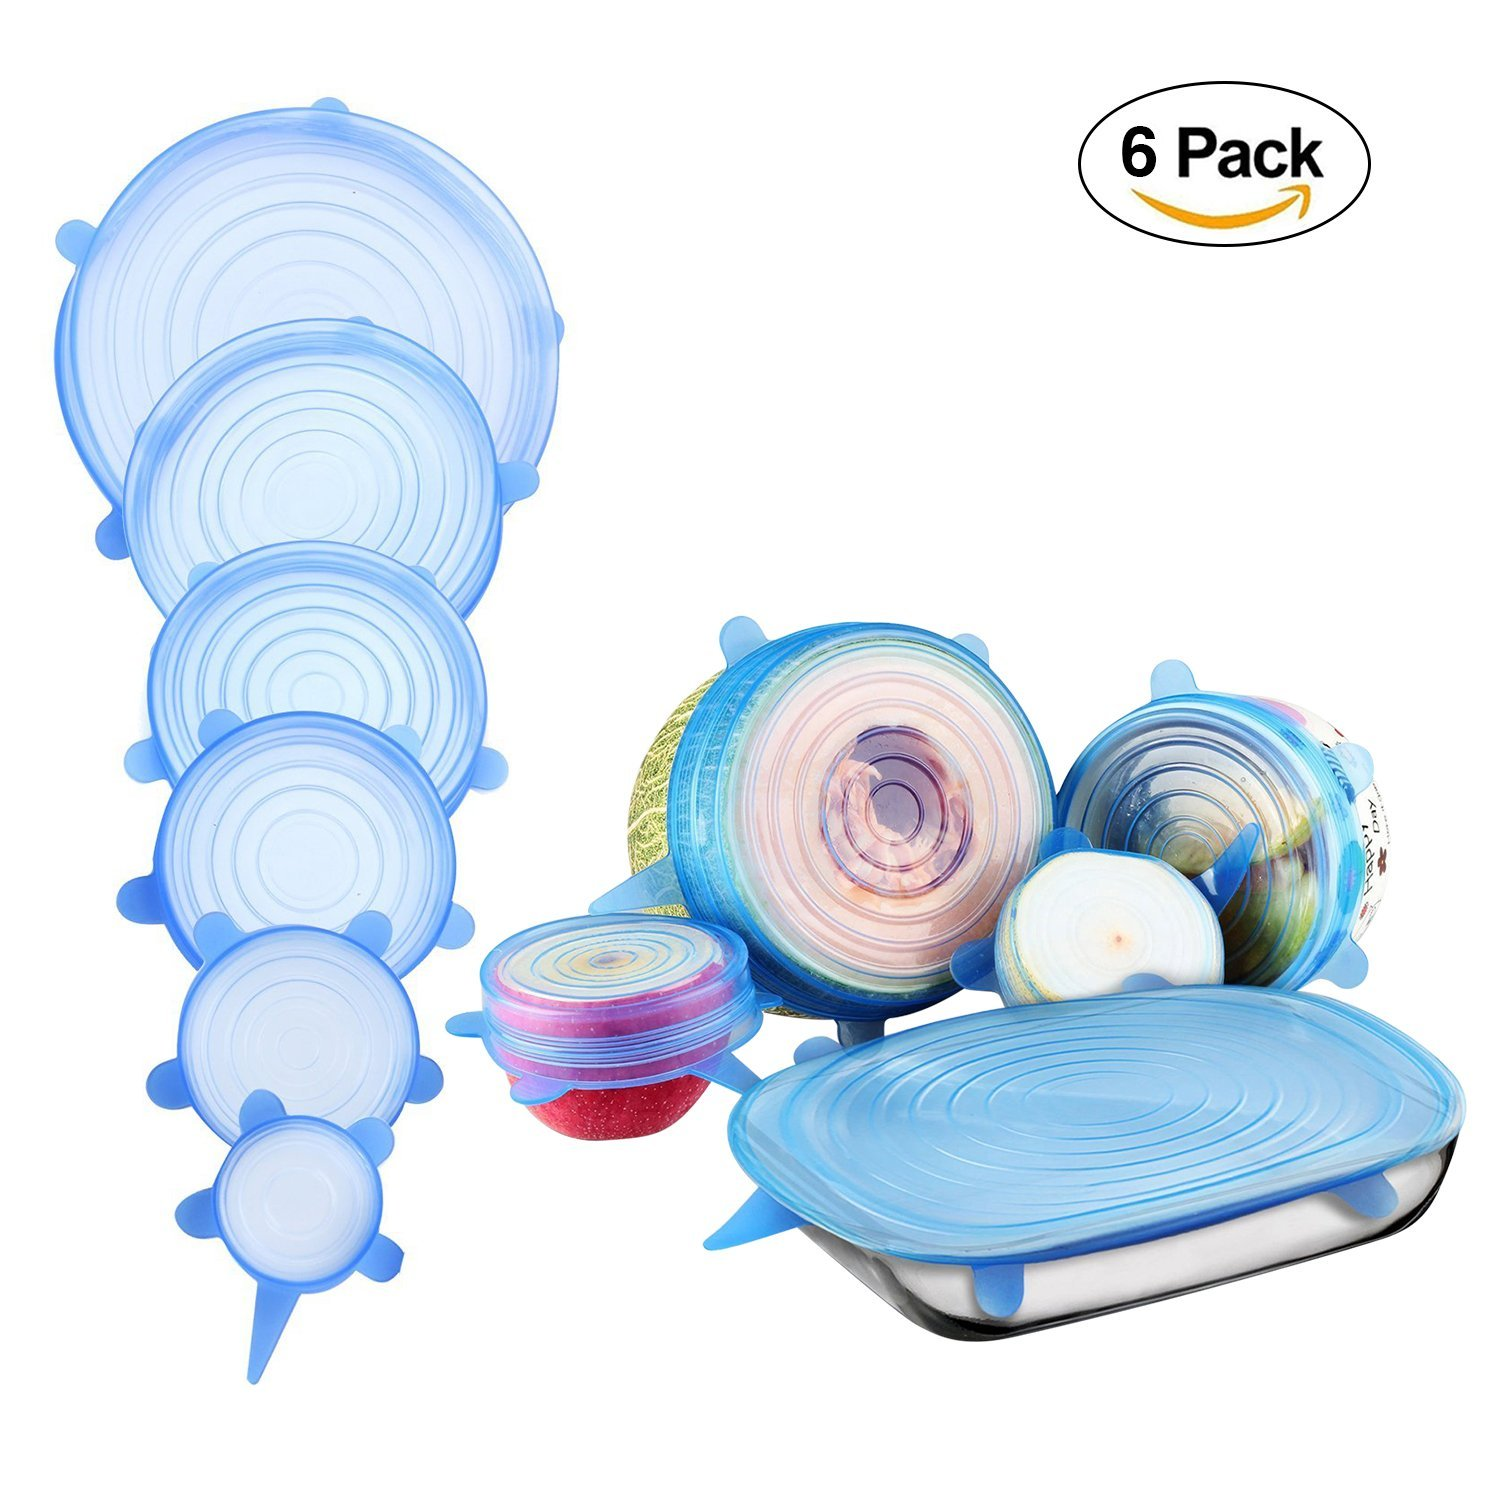 Silicone Stretch Lids - Sealing Cover - 6 Pack/12Pack- Homes- Durable and Eco-Friendly Stretch Lids for Fruits and Vegetables or Cups, Bowls, Dishes, Cans (6 pcs/set,blue)